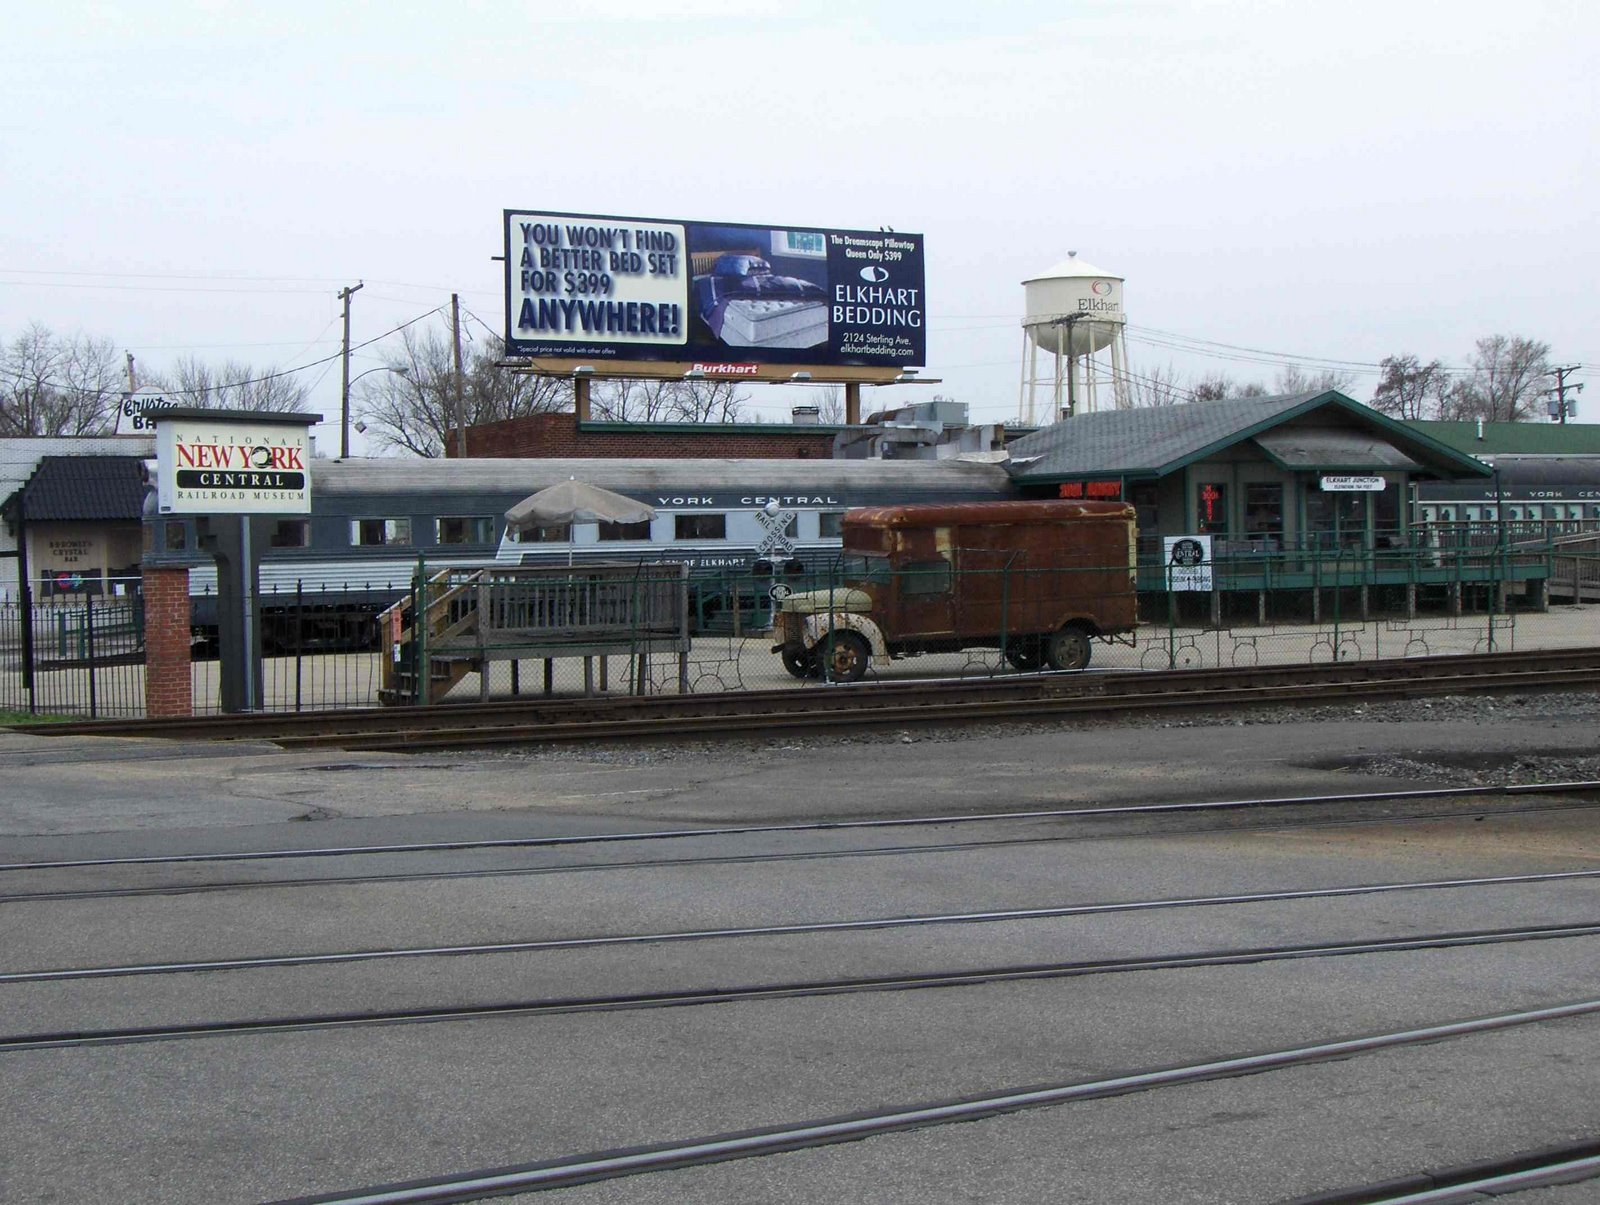 The National New York Central Railroad Museum...NOT on the wrong side of the tracks.